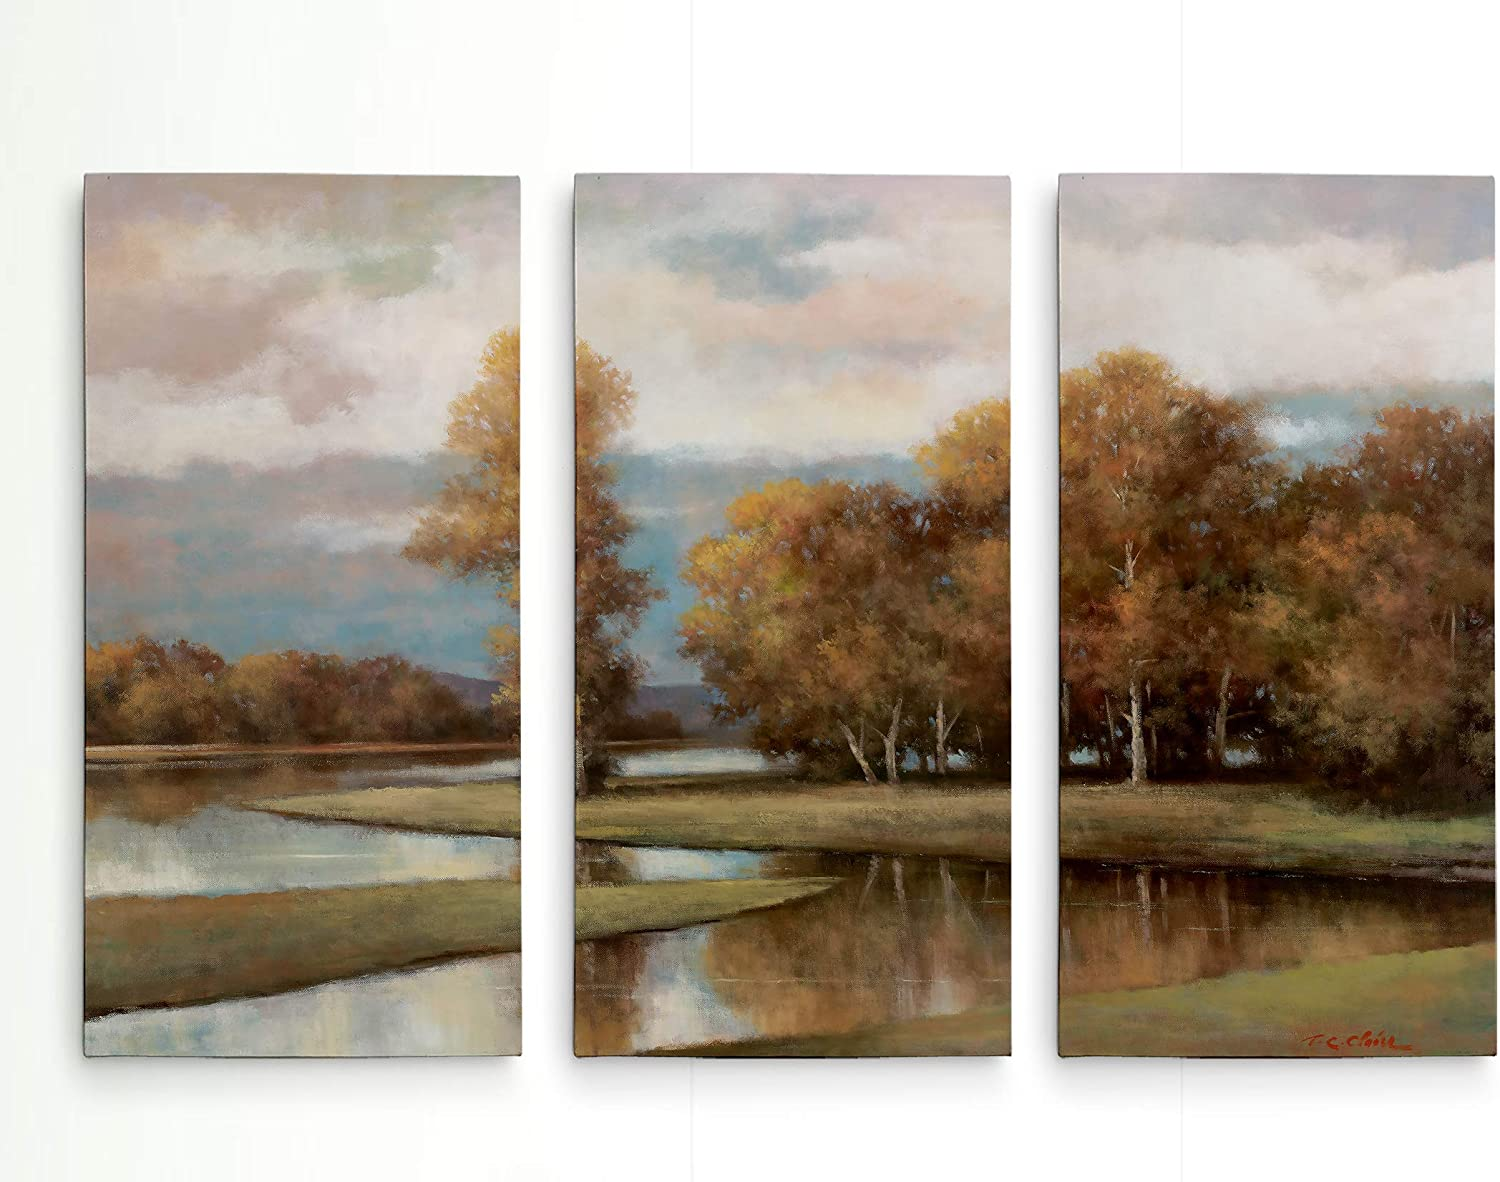 Amazon Com Renditions Gallery Canvas Prints Wall Art Winding River Ii Gallery Wrapped Lanscape Modern Home Décor Ready To Hang 3 Pieces Each Canvas 12in Wx24in Hx1 5in D Total Size 36 Wx24 Hx1 5 D Posters Prints